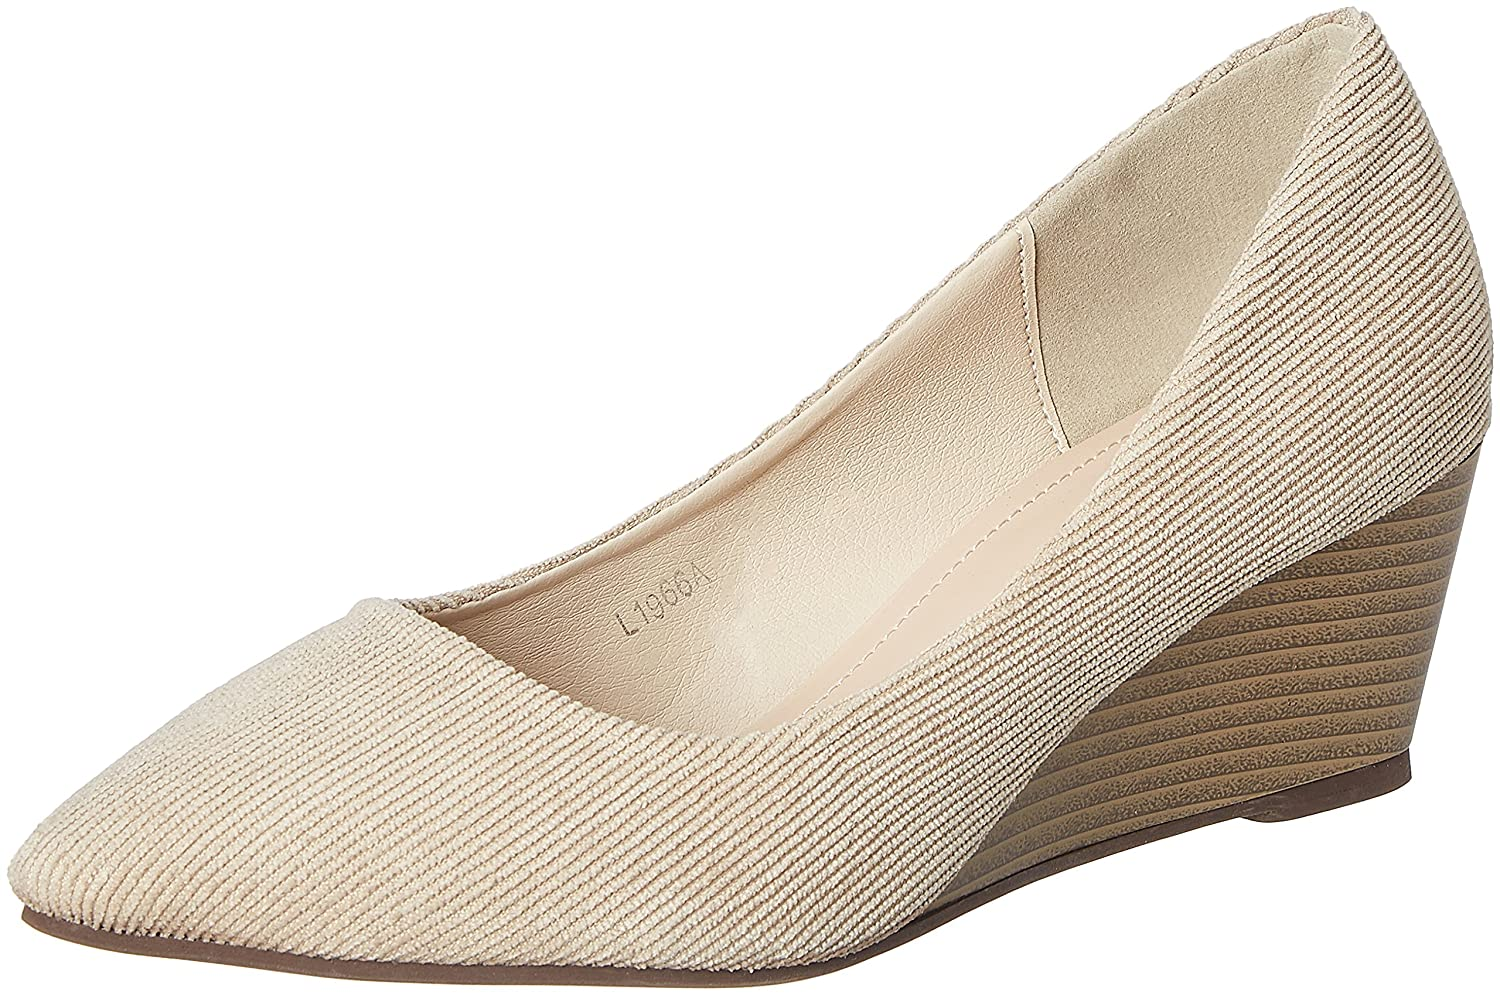 30% - 60% off on Women's & Kid's Shoes By Amazon | Favore Women's Joya Pumps @ Rs.839